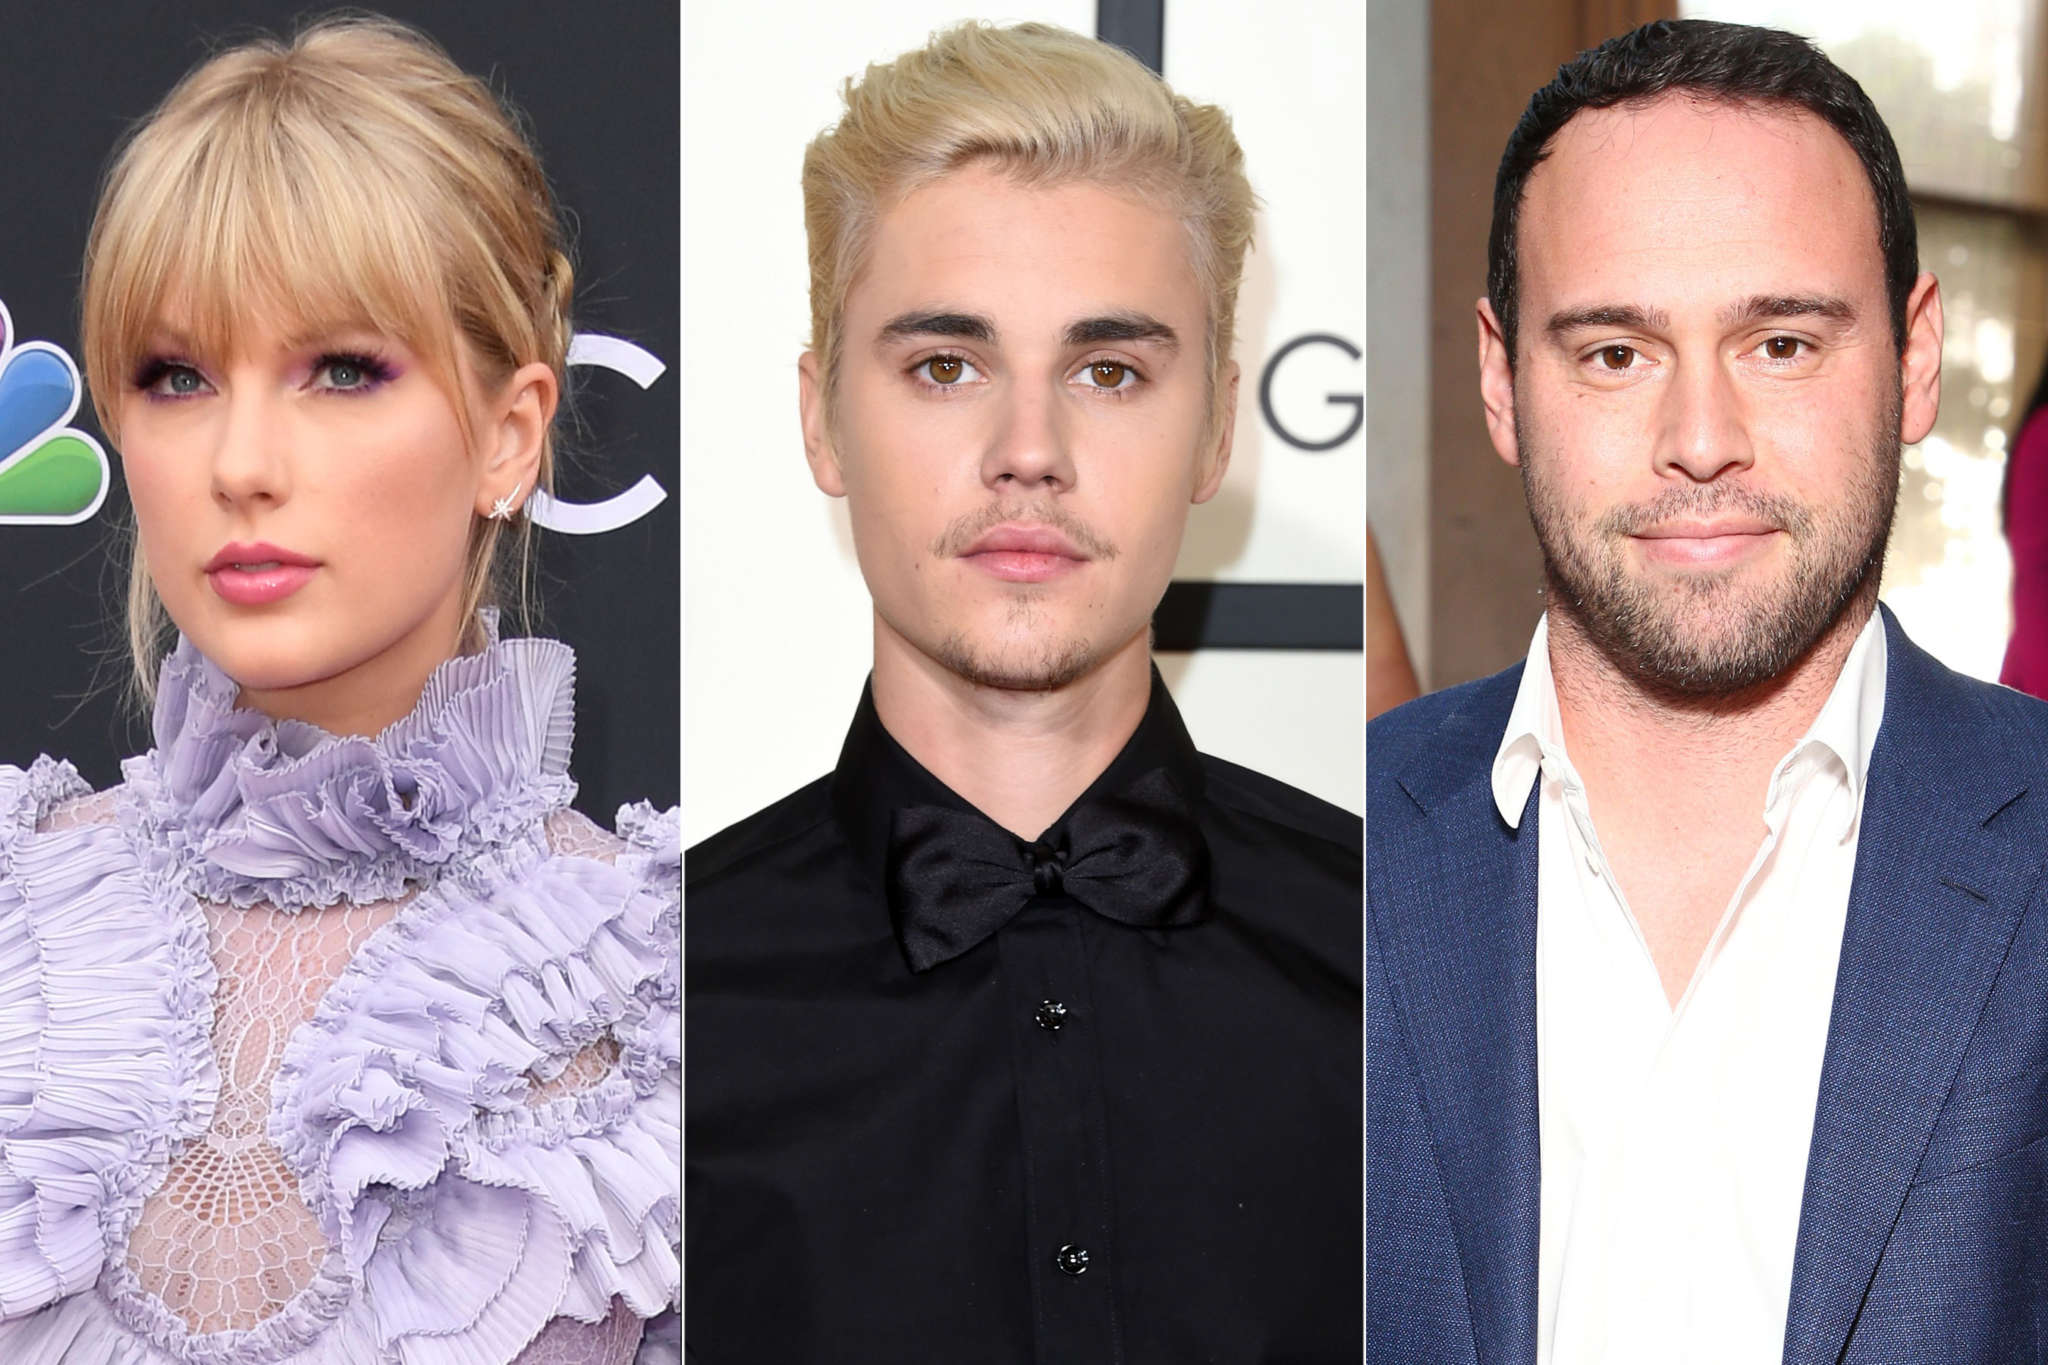 scooter-braun-seems-to-troll-taylor-swift-by-teasing-justin-bieber-album-just-hours-after-she-announces-surprise-album-release